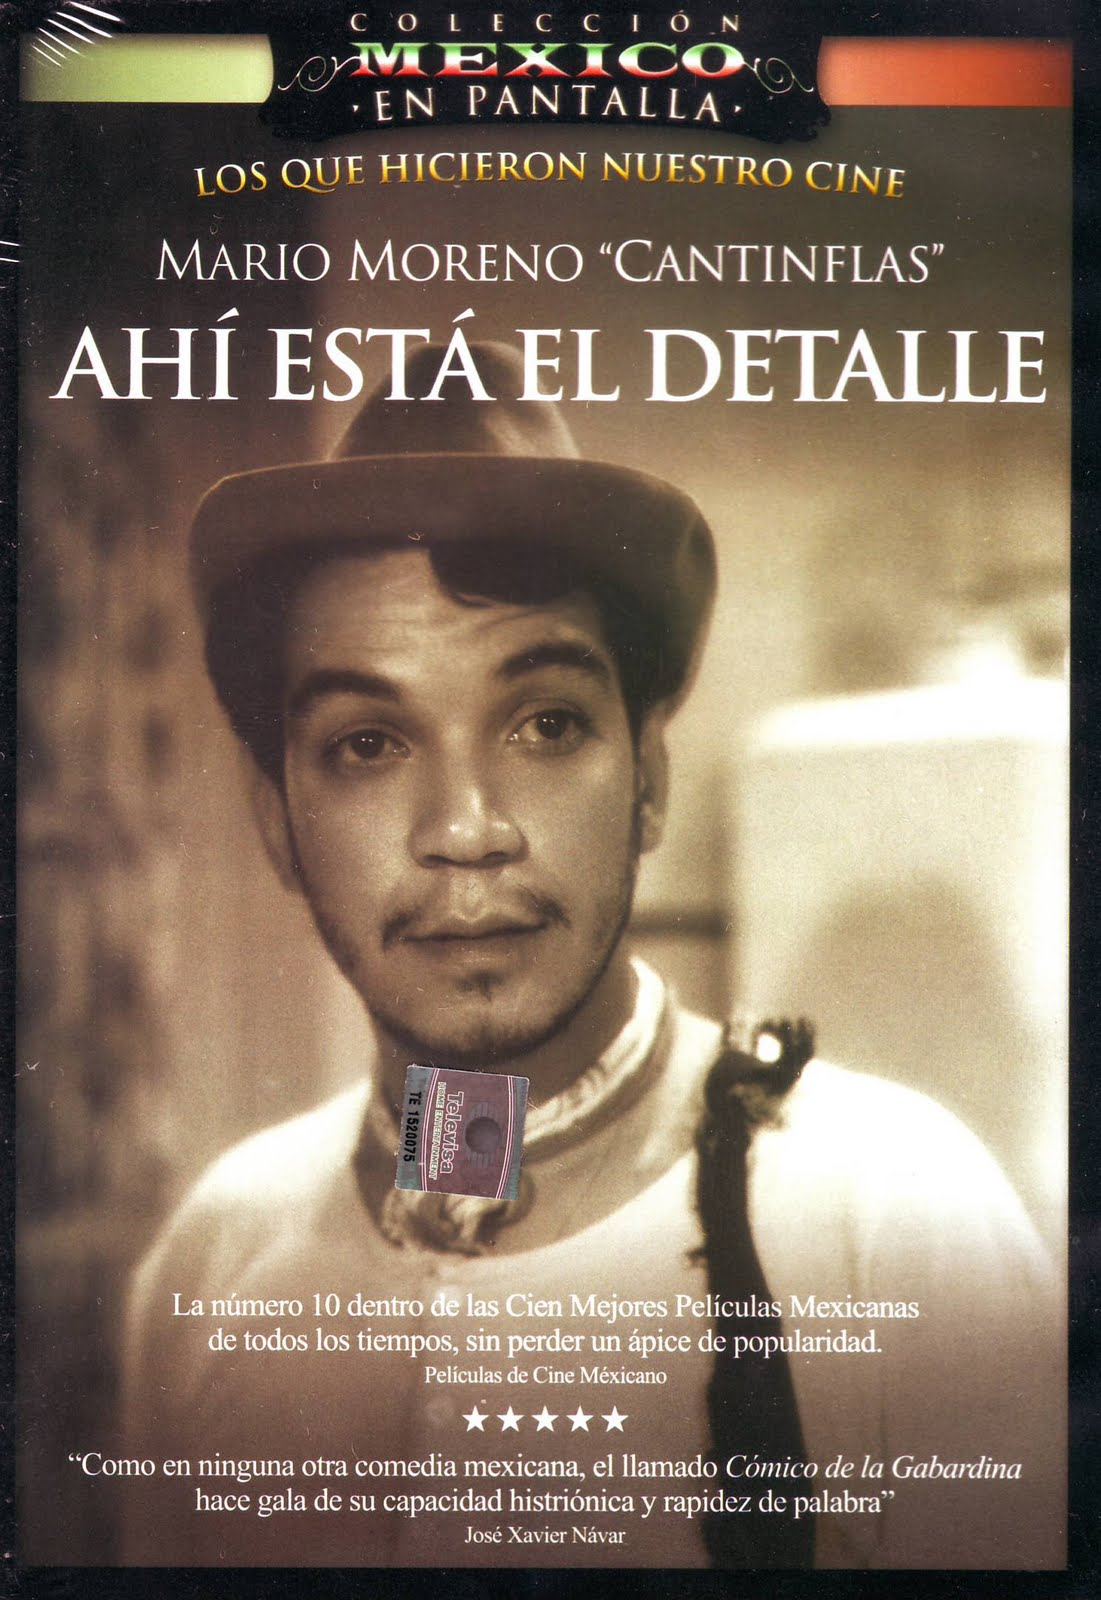 Cantinflas - Photos